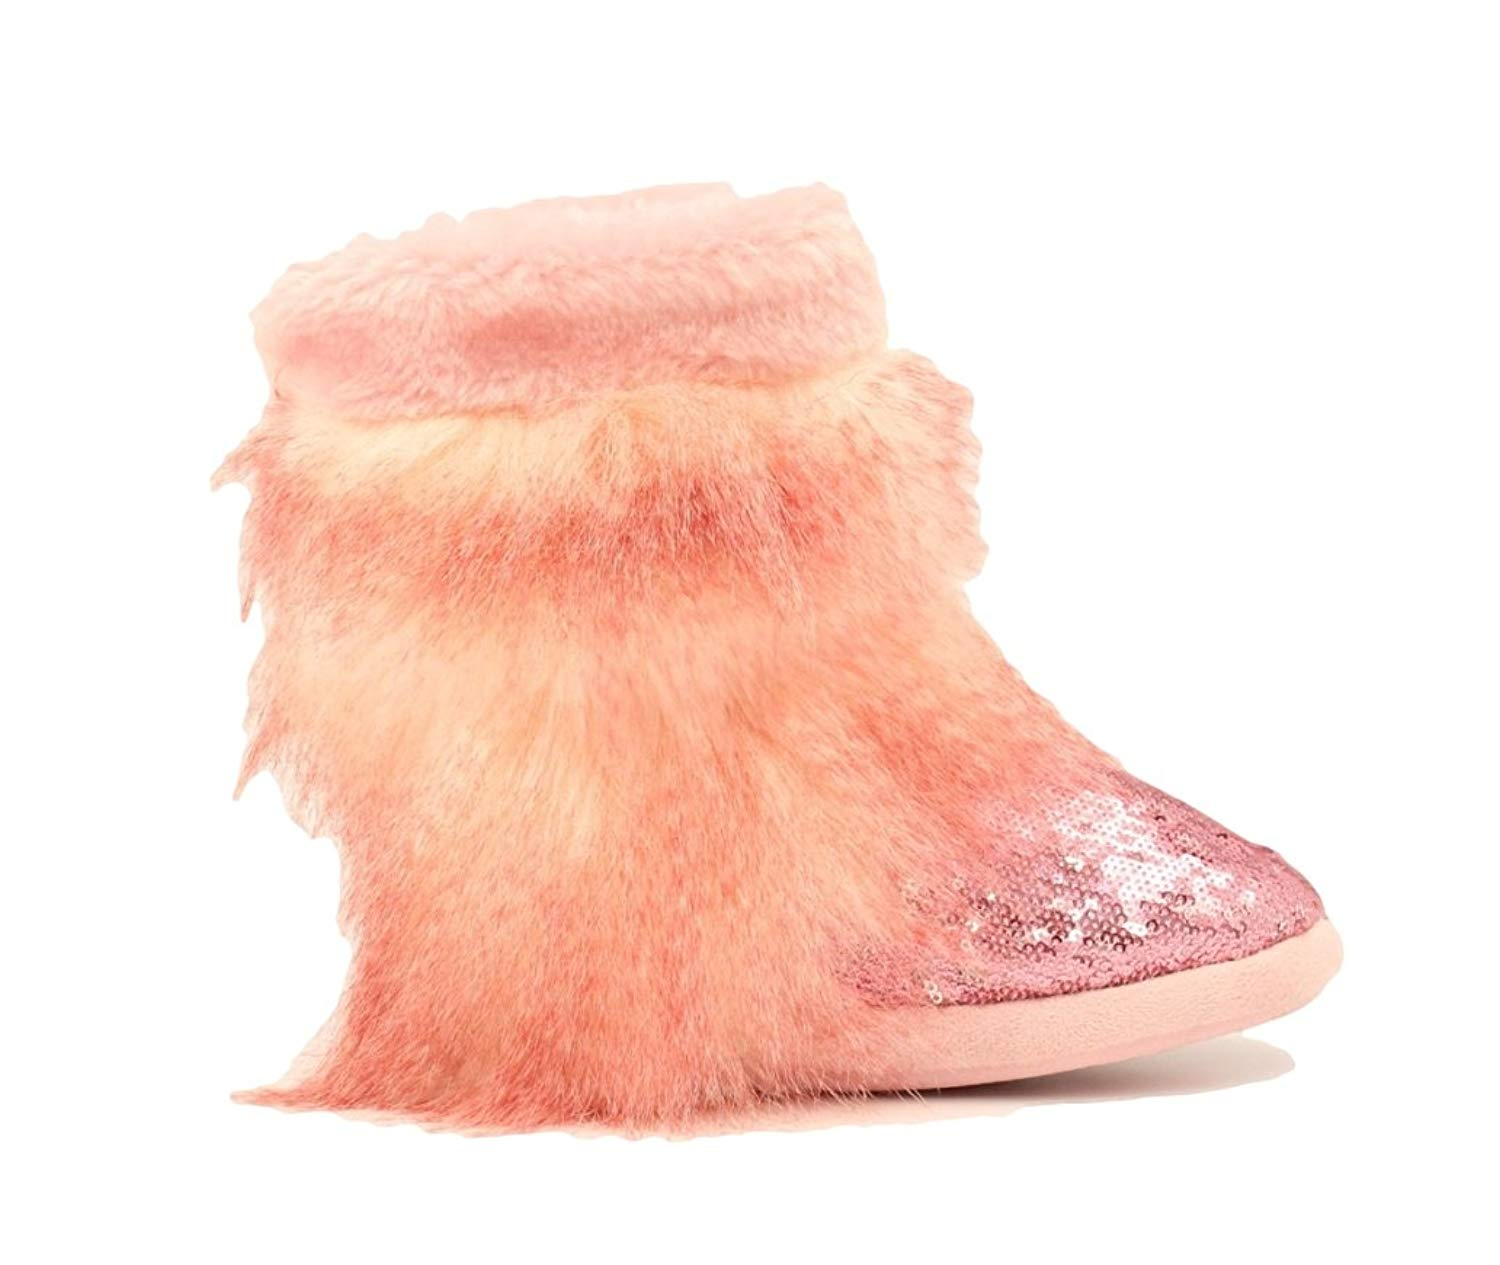 825be14e8be7 Cheap Faux Fur Boot Slippers, find Faux Fur Boot Slippers deals on ...